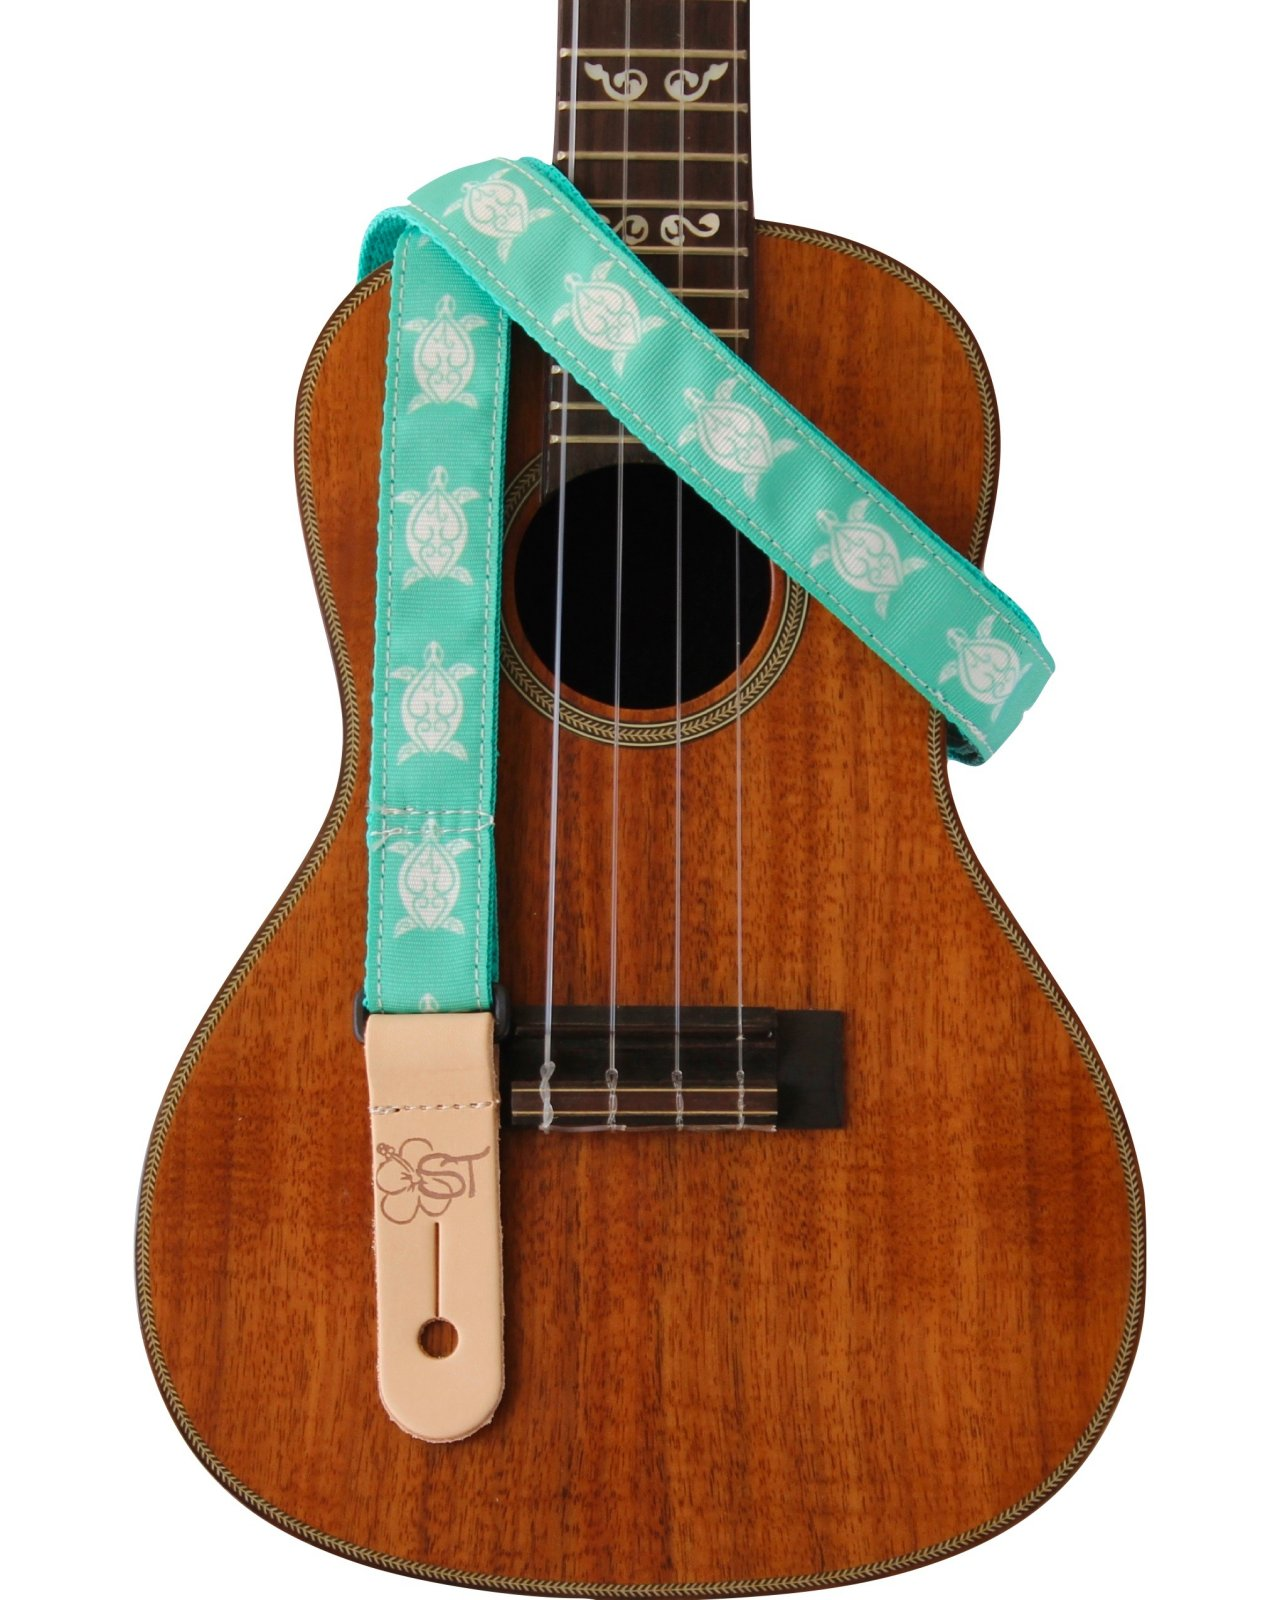 Sherrin's Threads 1 Hawaiian Print Ukulele Strap - Teal Turtle